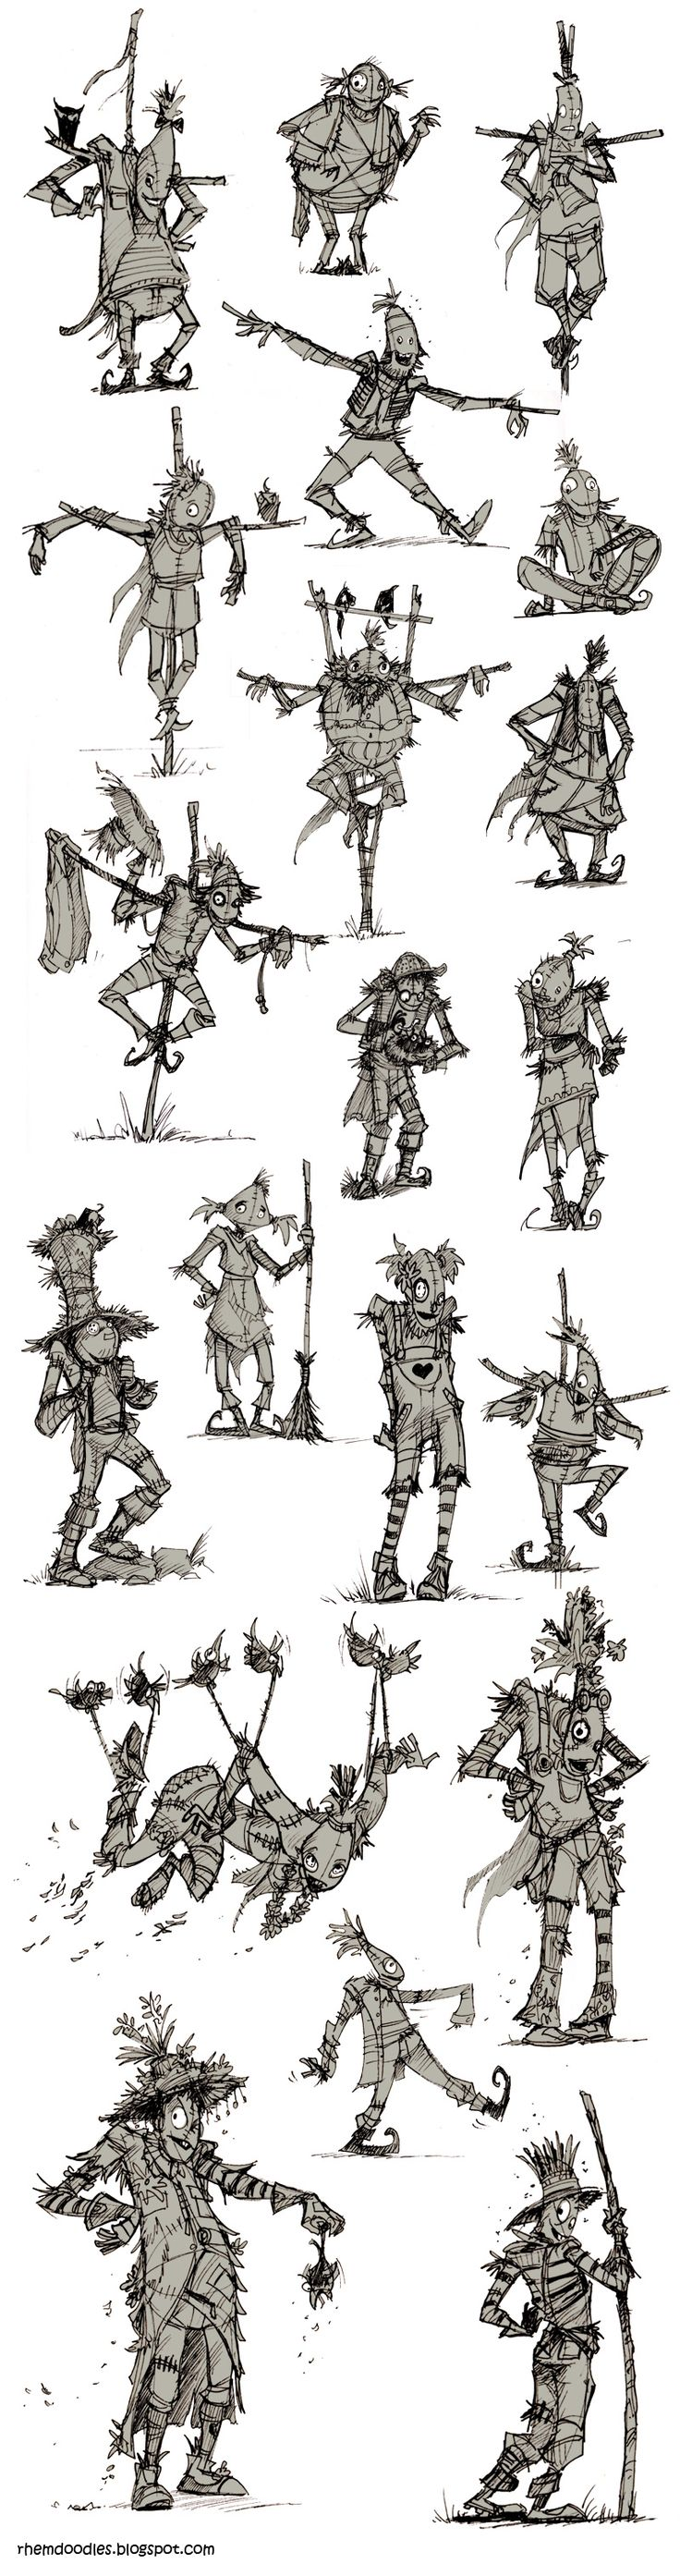 Wizard of Oz : Character Redesigns! - Digital Webbing Forums